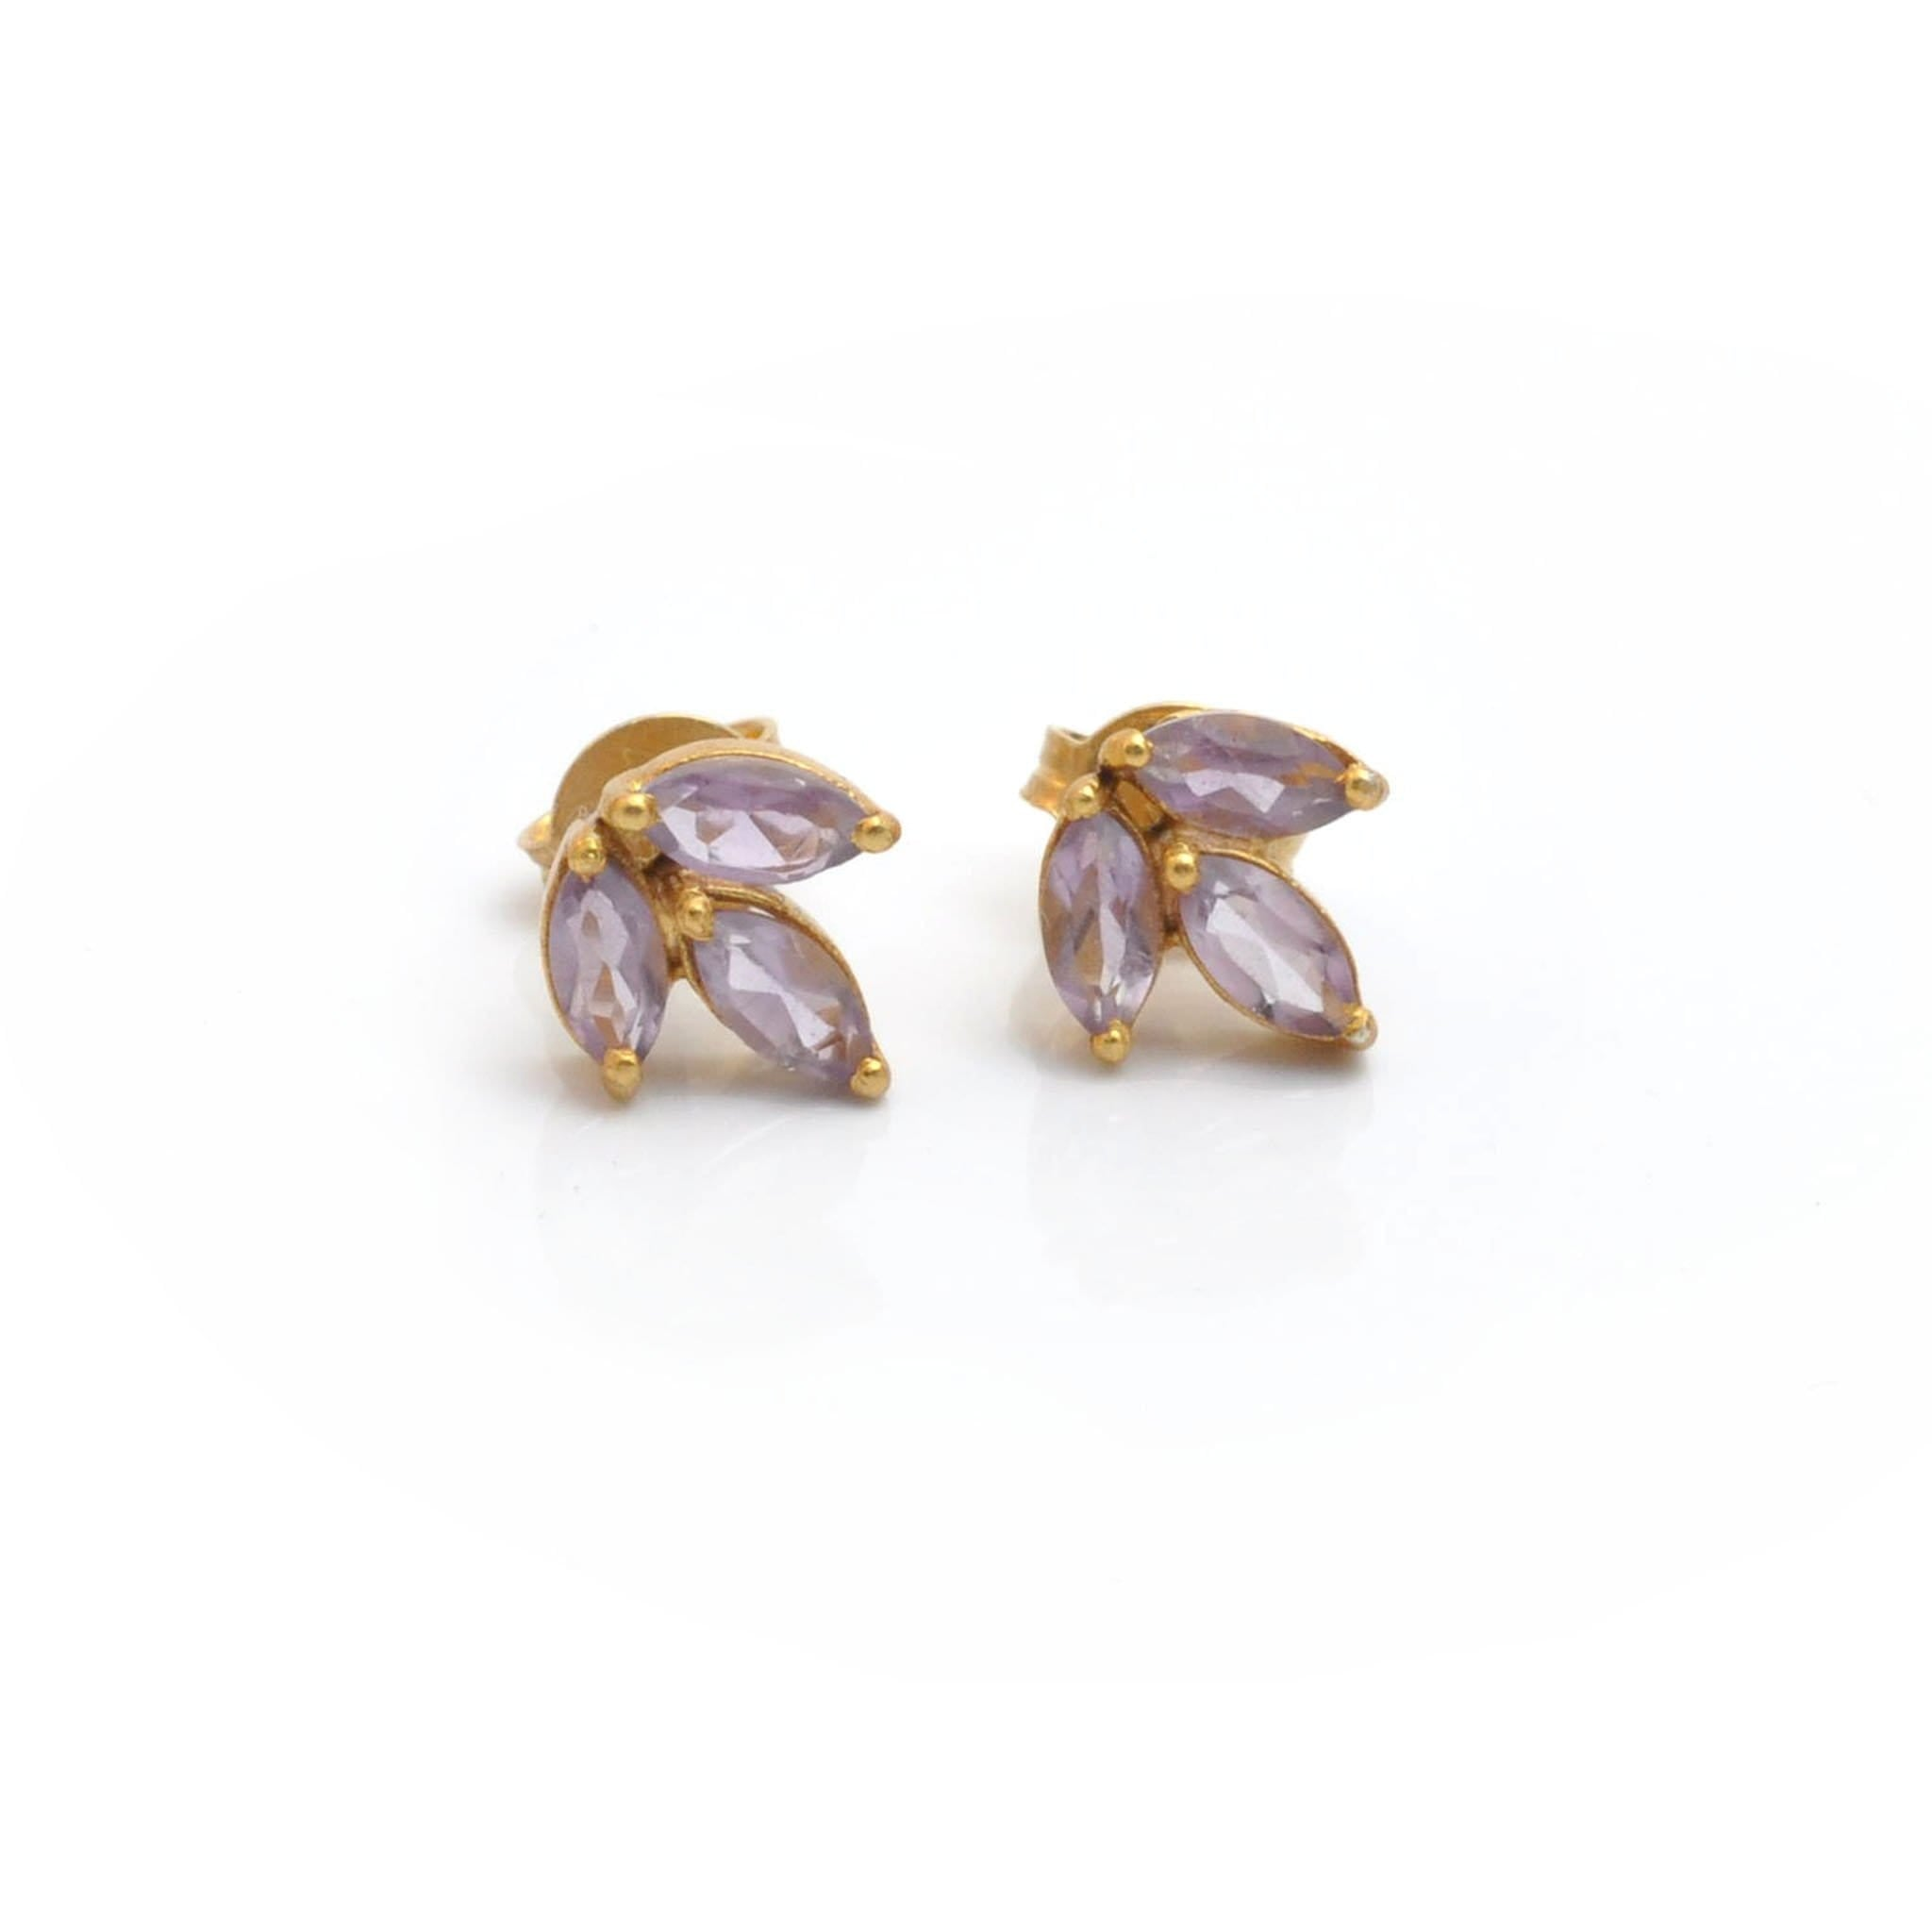 baker garnet earrings jewellery rhodlite franki stud products shaped silver size marquise facetted natural sterling